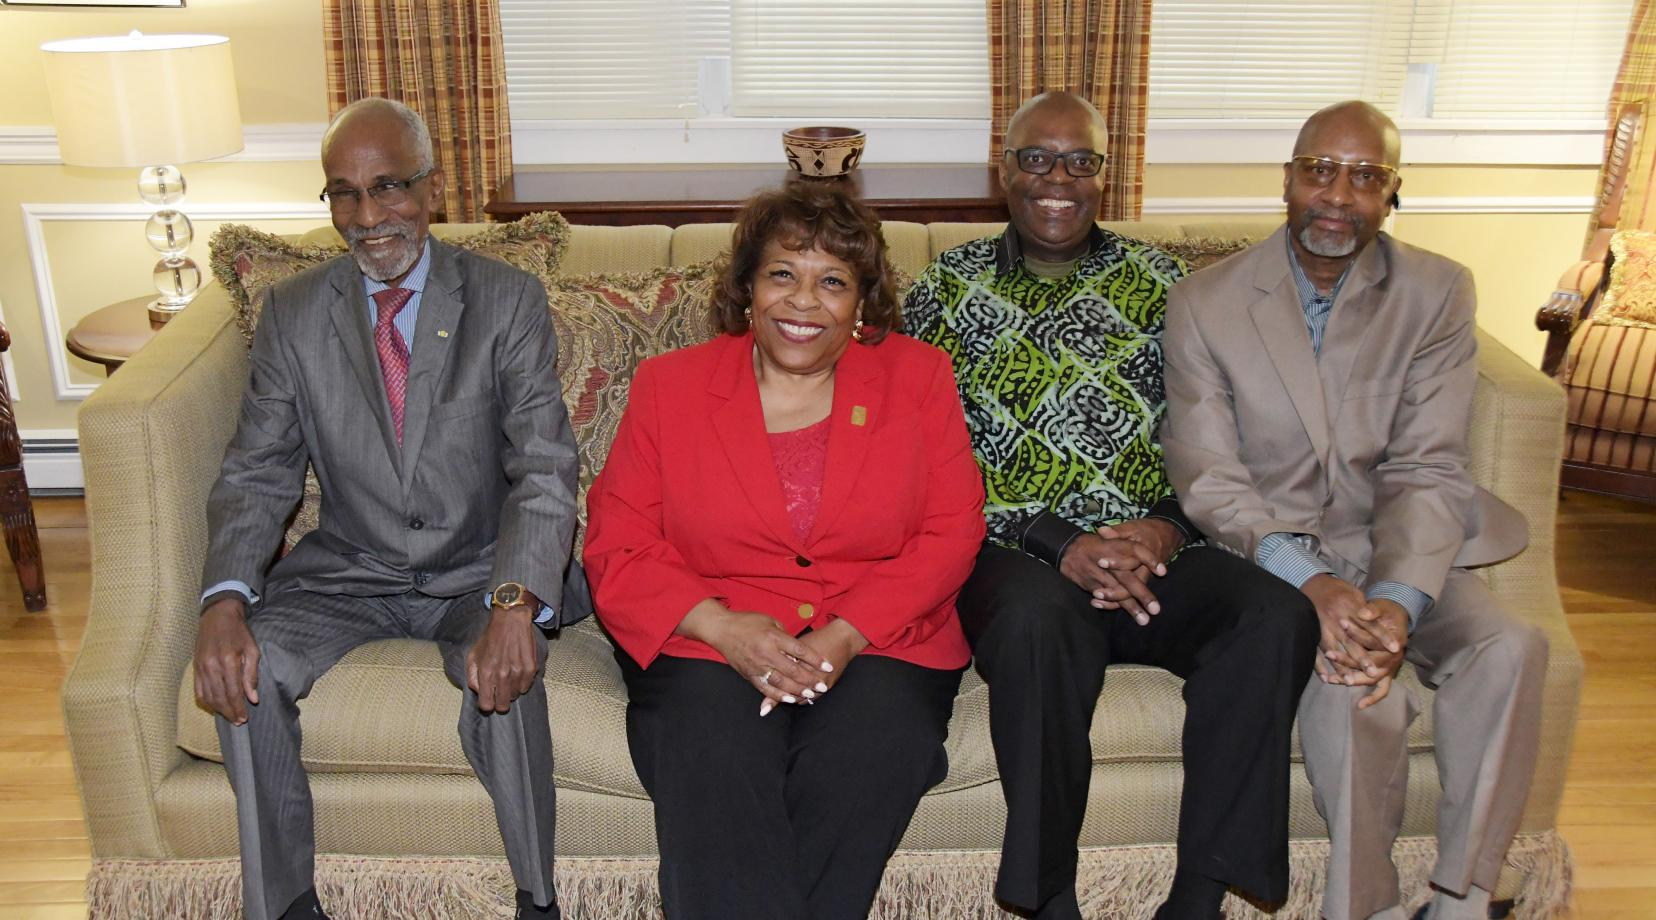 (L-r) APRM Minister Khayar Oumar Defallah, University President Wilma Mishoe, APRM CEO Dr. Eddy Maloka, and Center for Global Africa's Ezrah Aharone, pose together during a April 9 reception at the President's Residence.